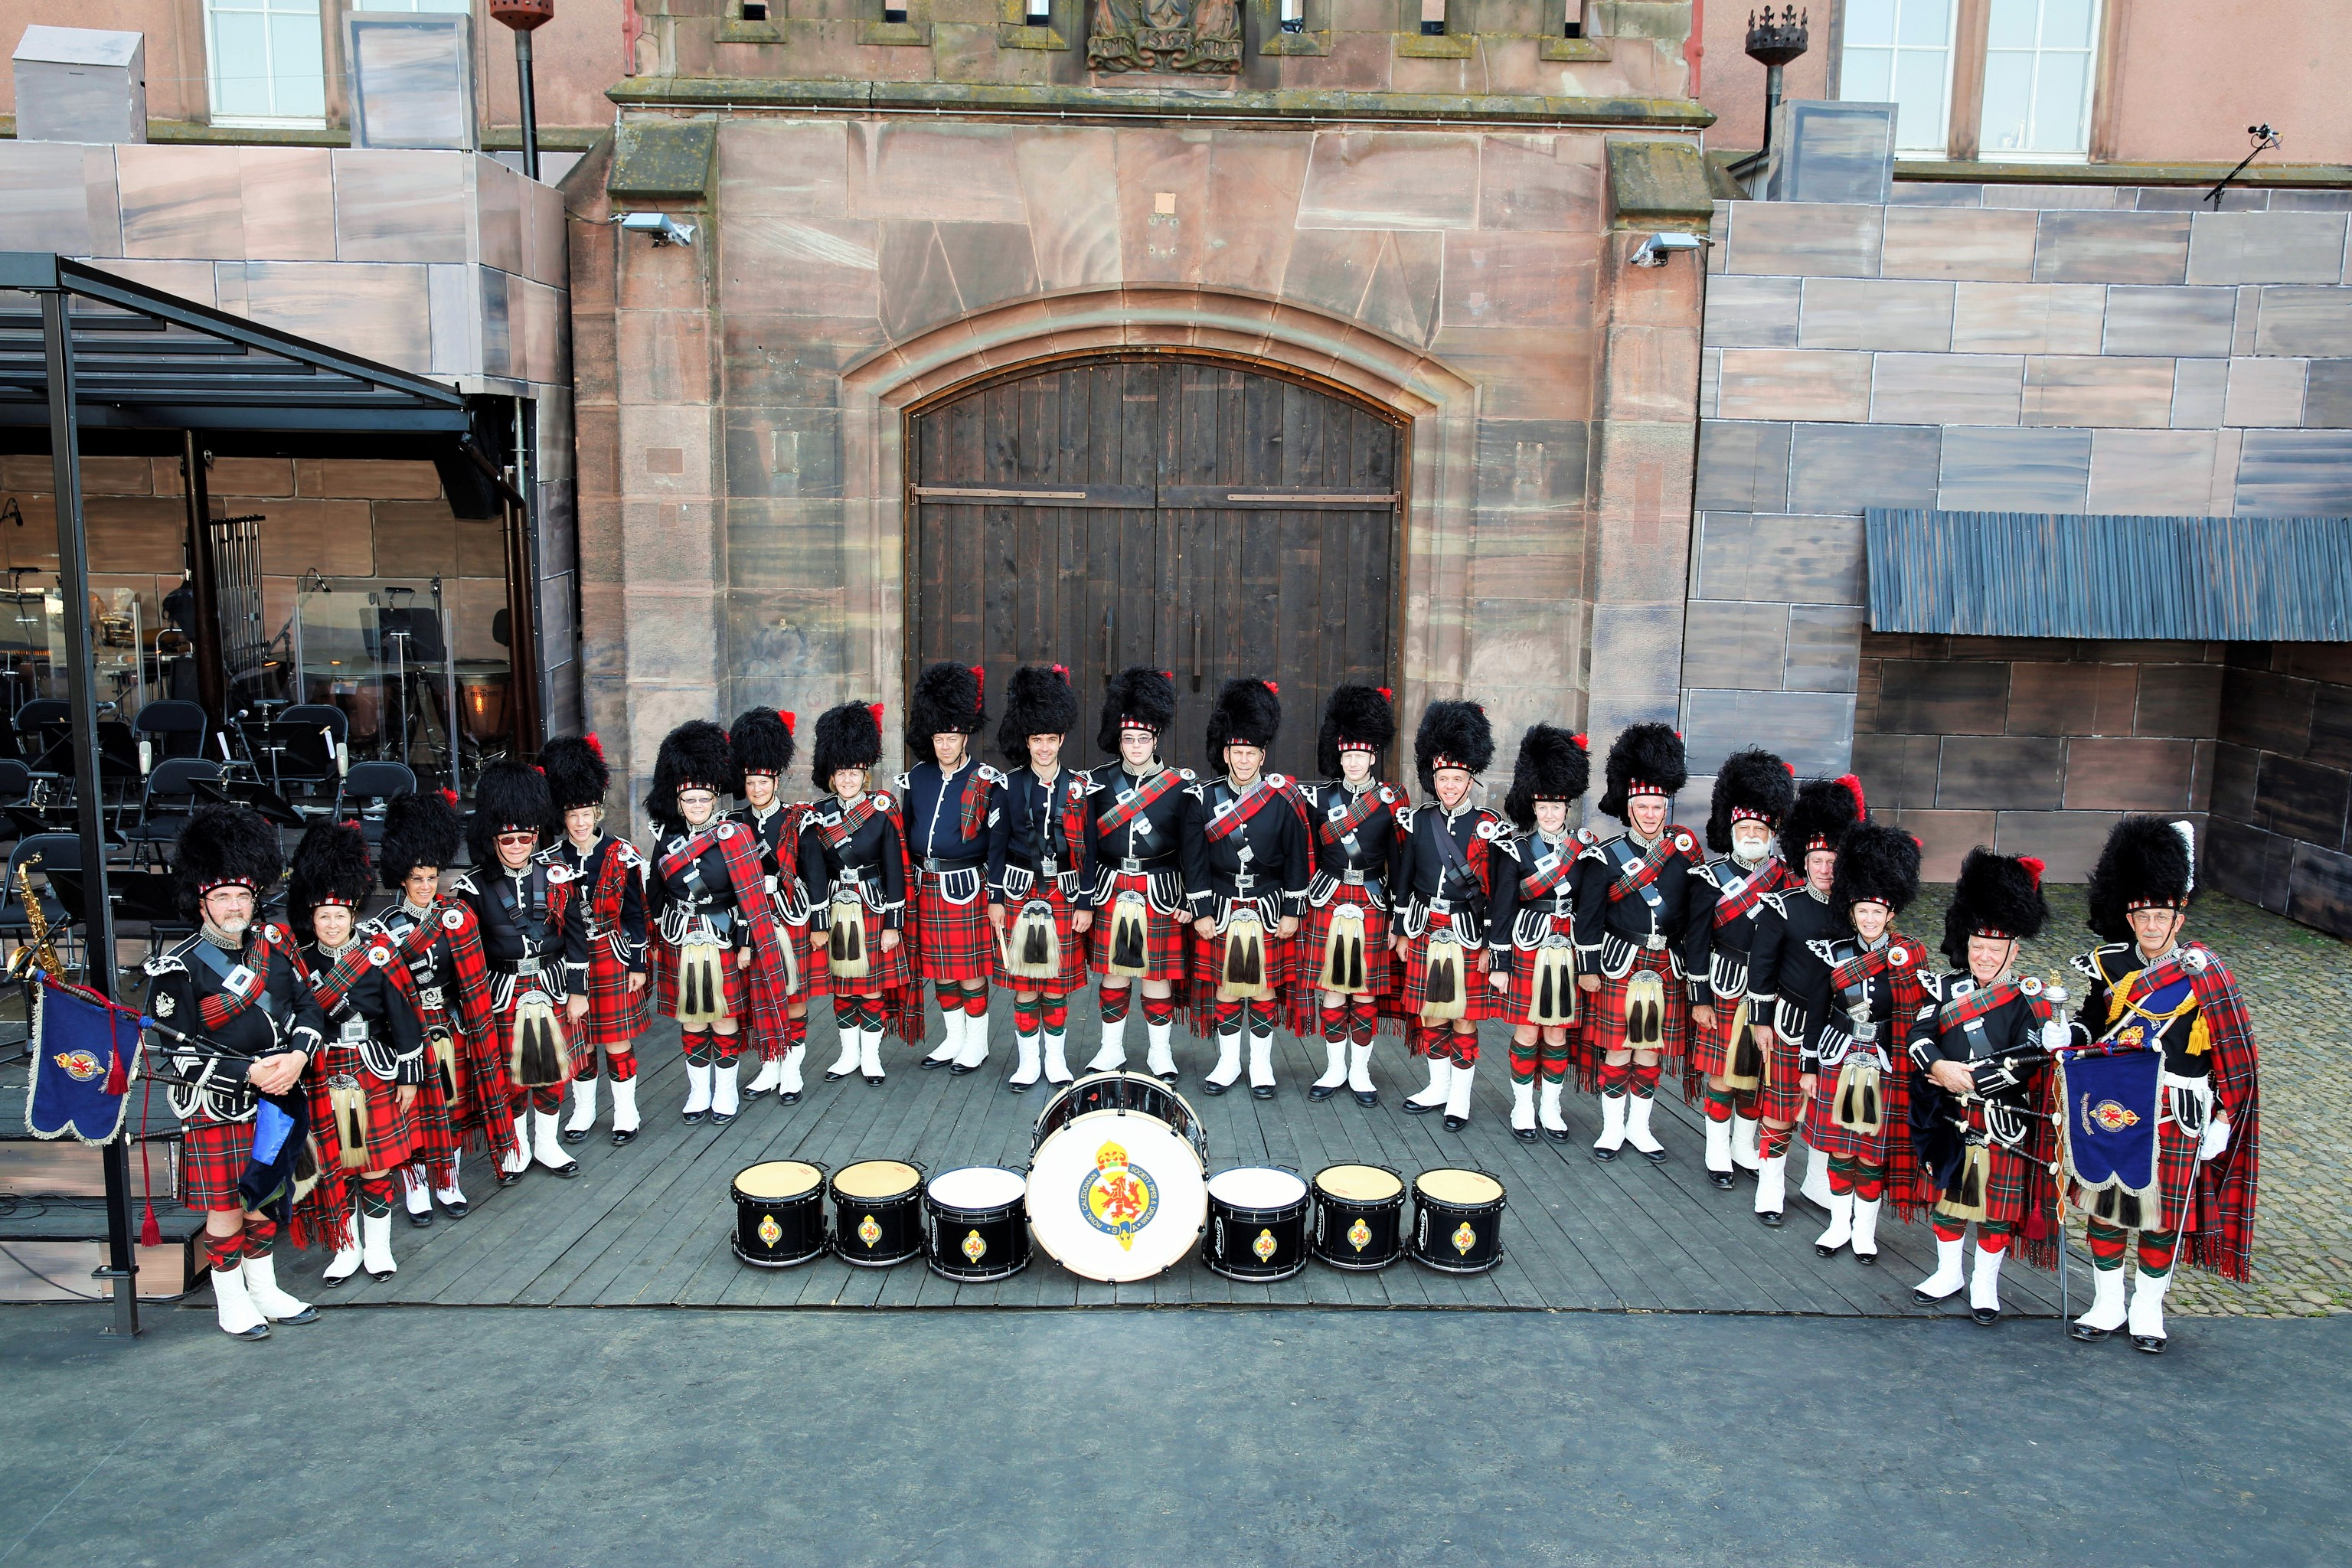 History of the band pipes drums of the royal for Edinburgh tattoo australia